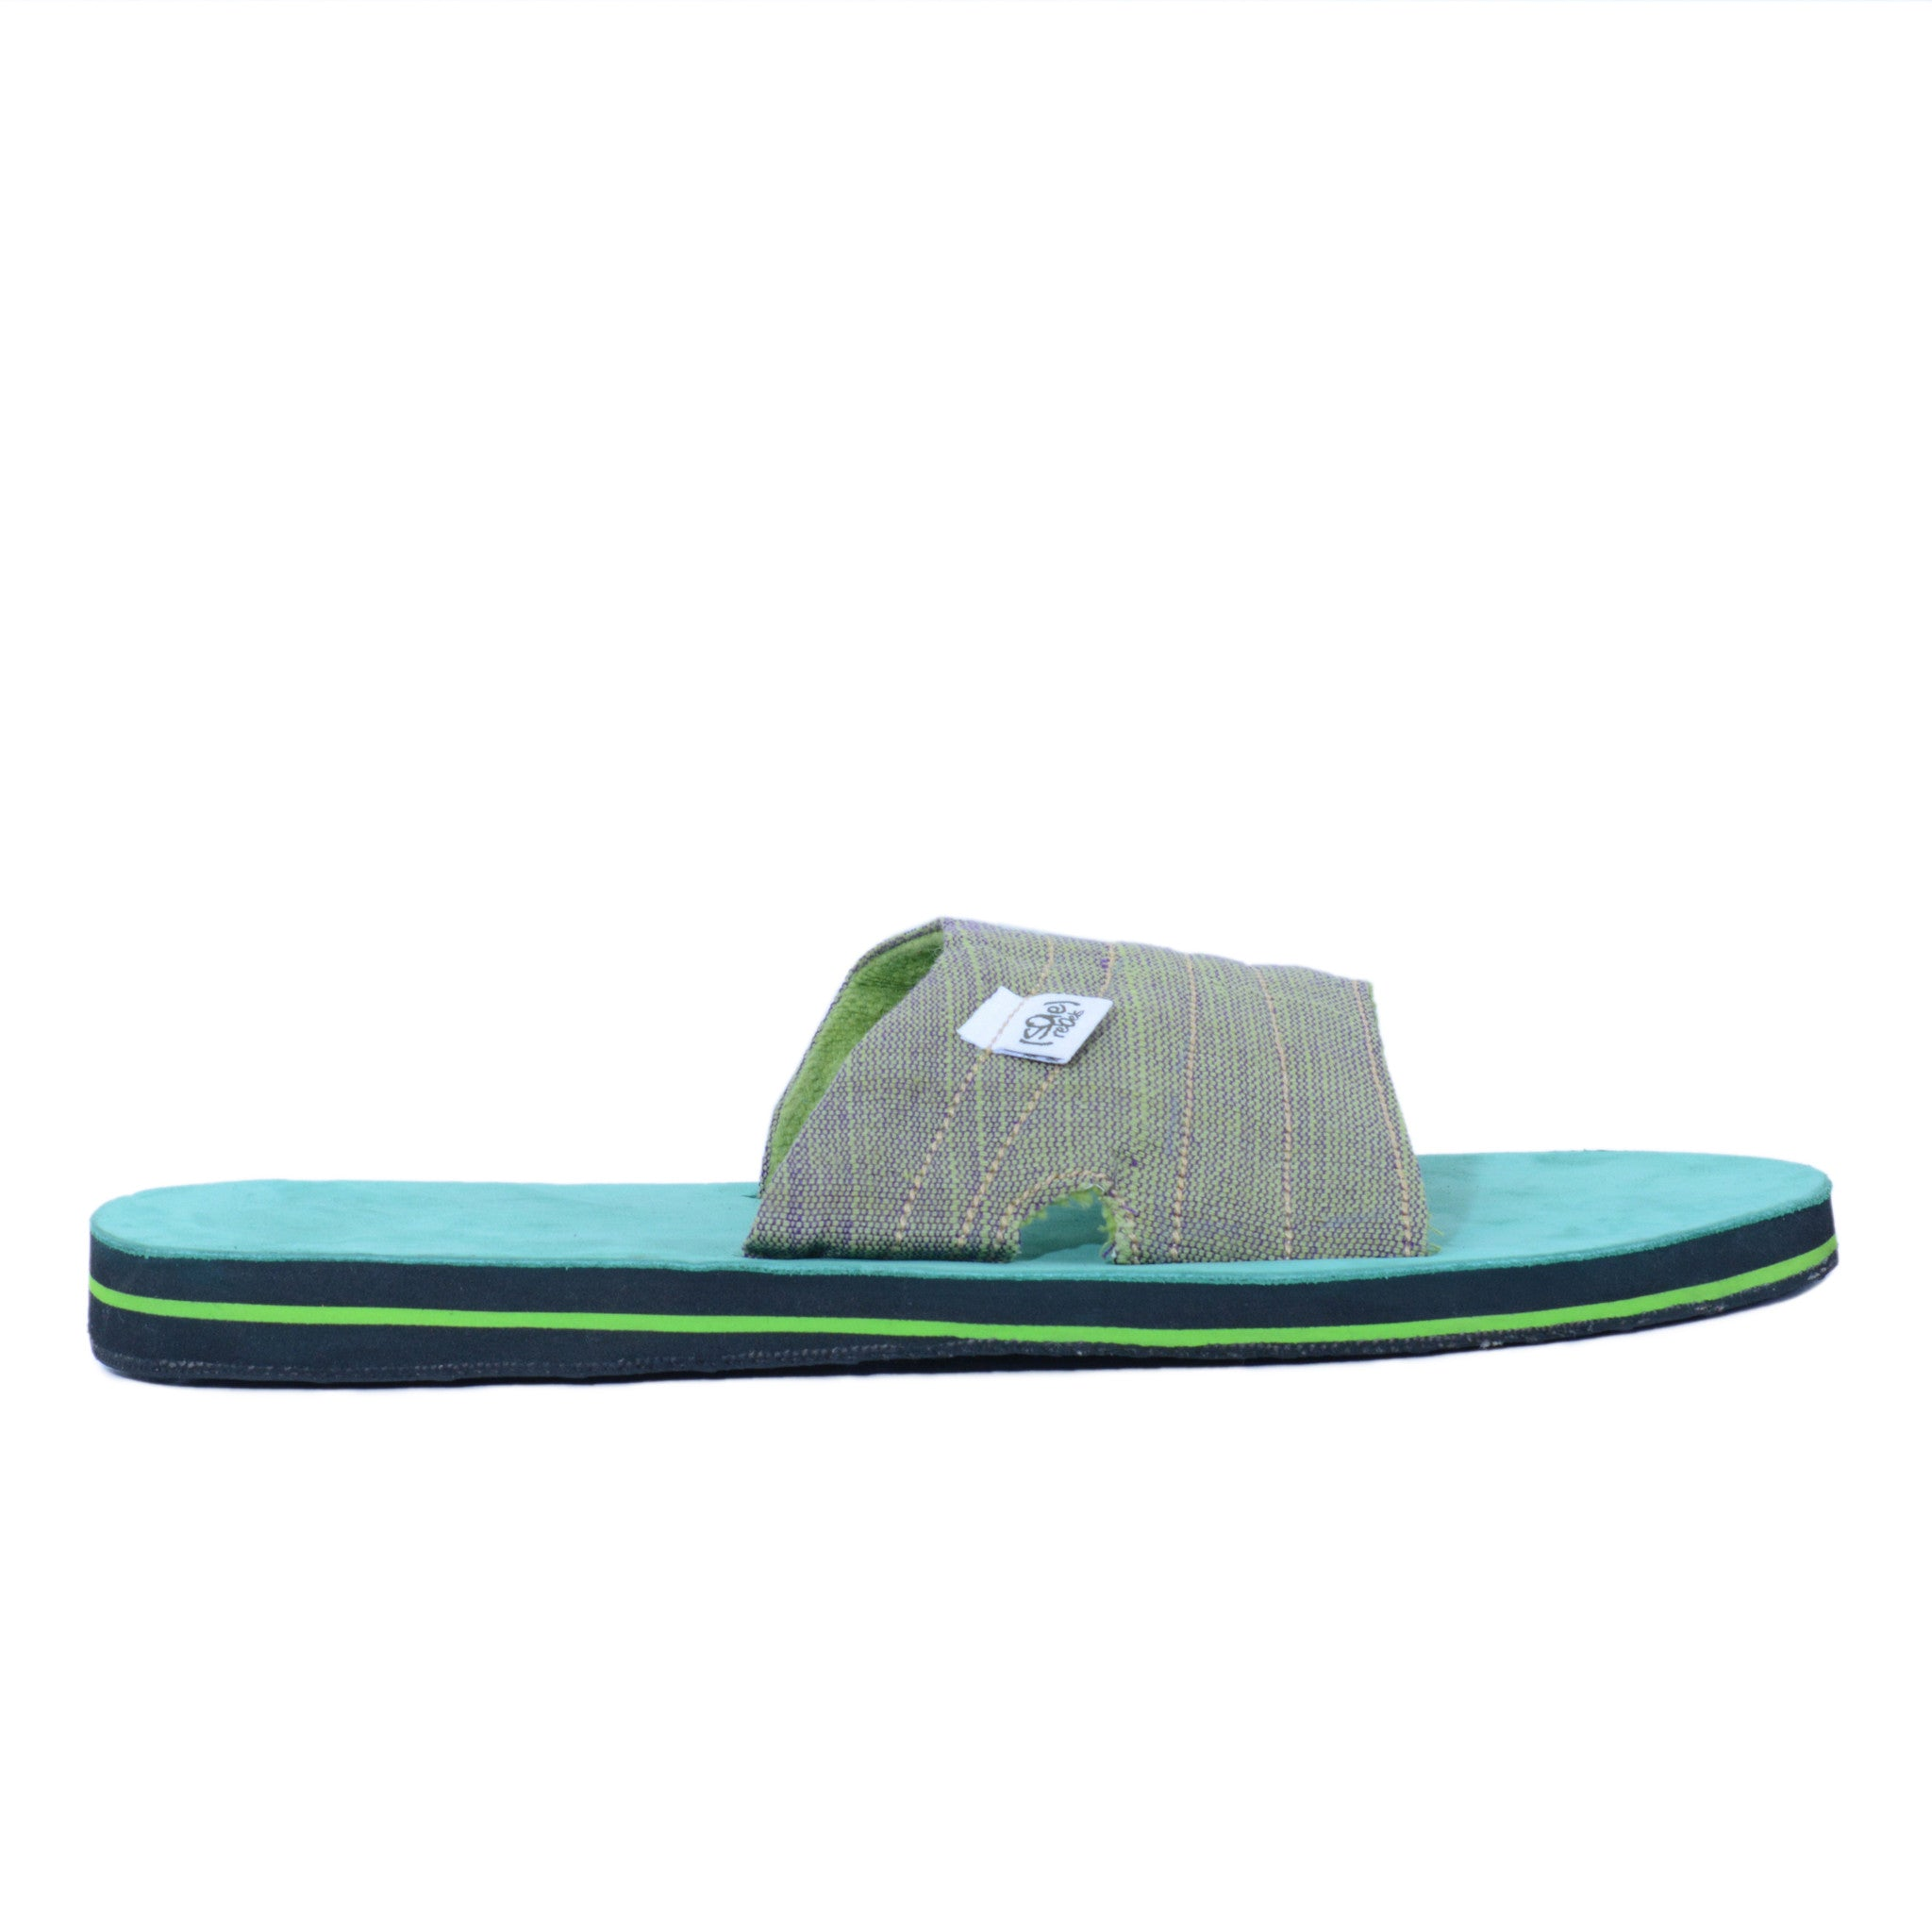 solerebels Green zuck it 2 Sandals